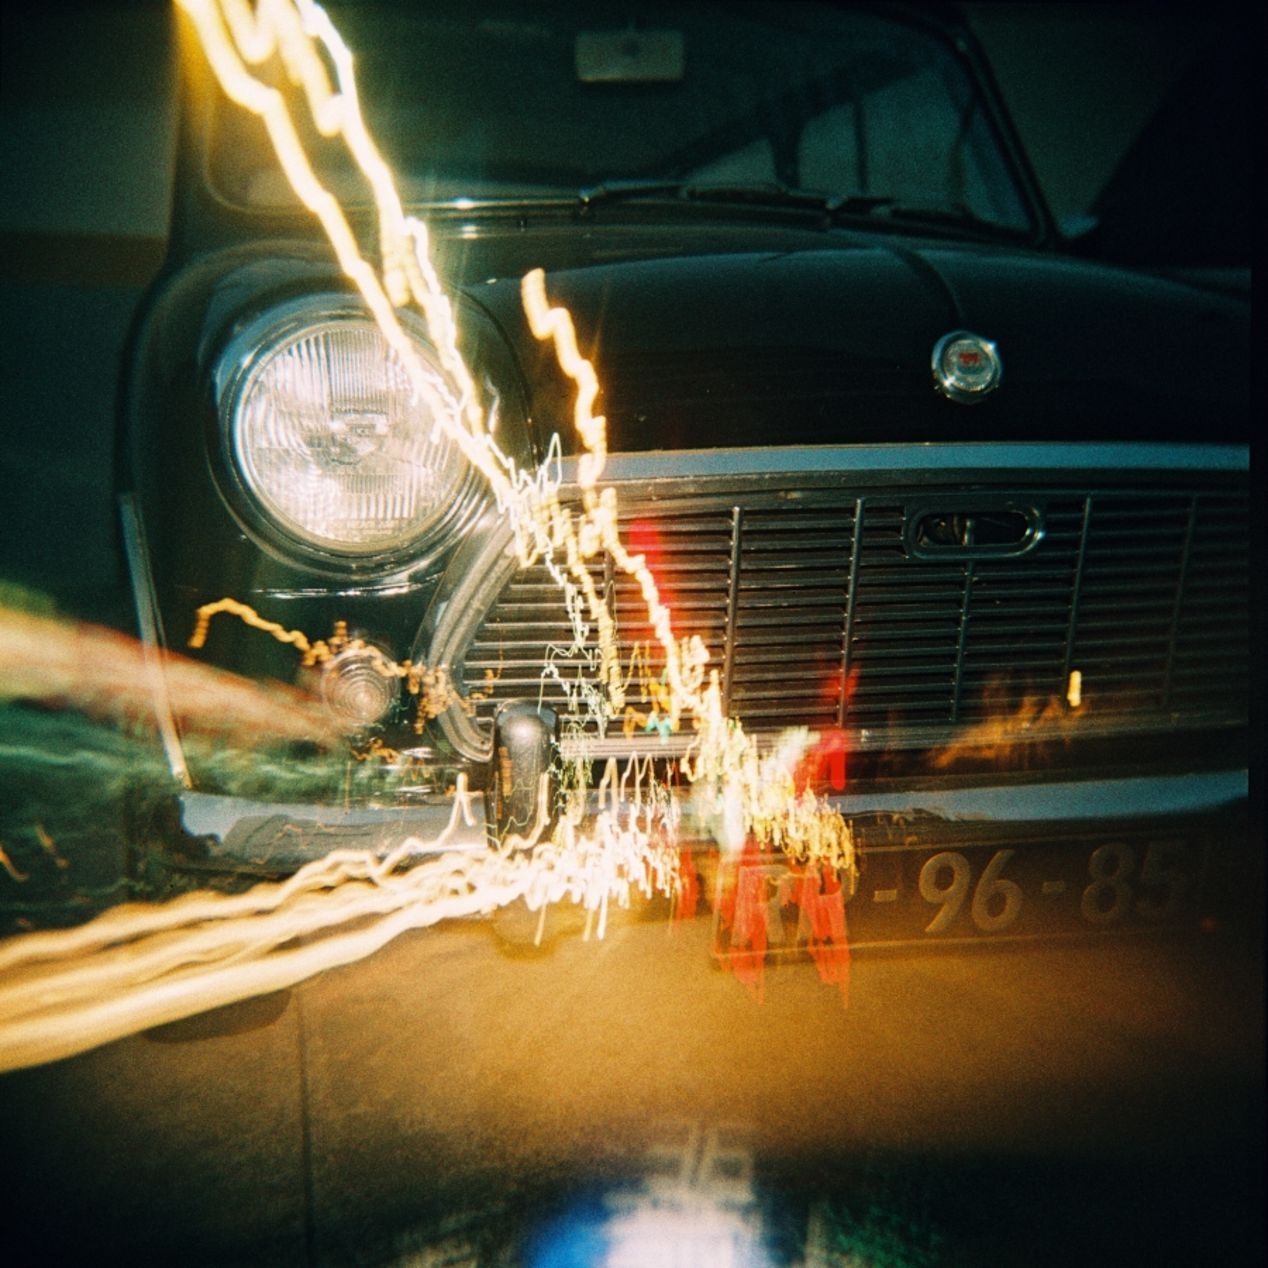 Flashing Mini – Double exposure with lights in bulb shutter.